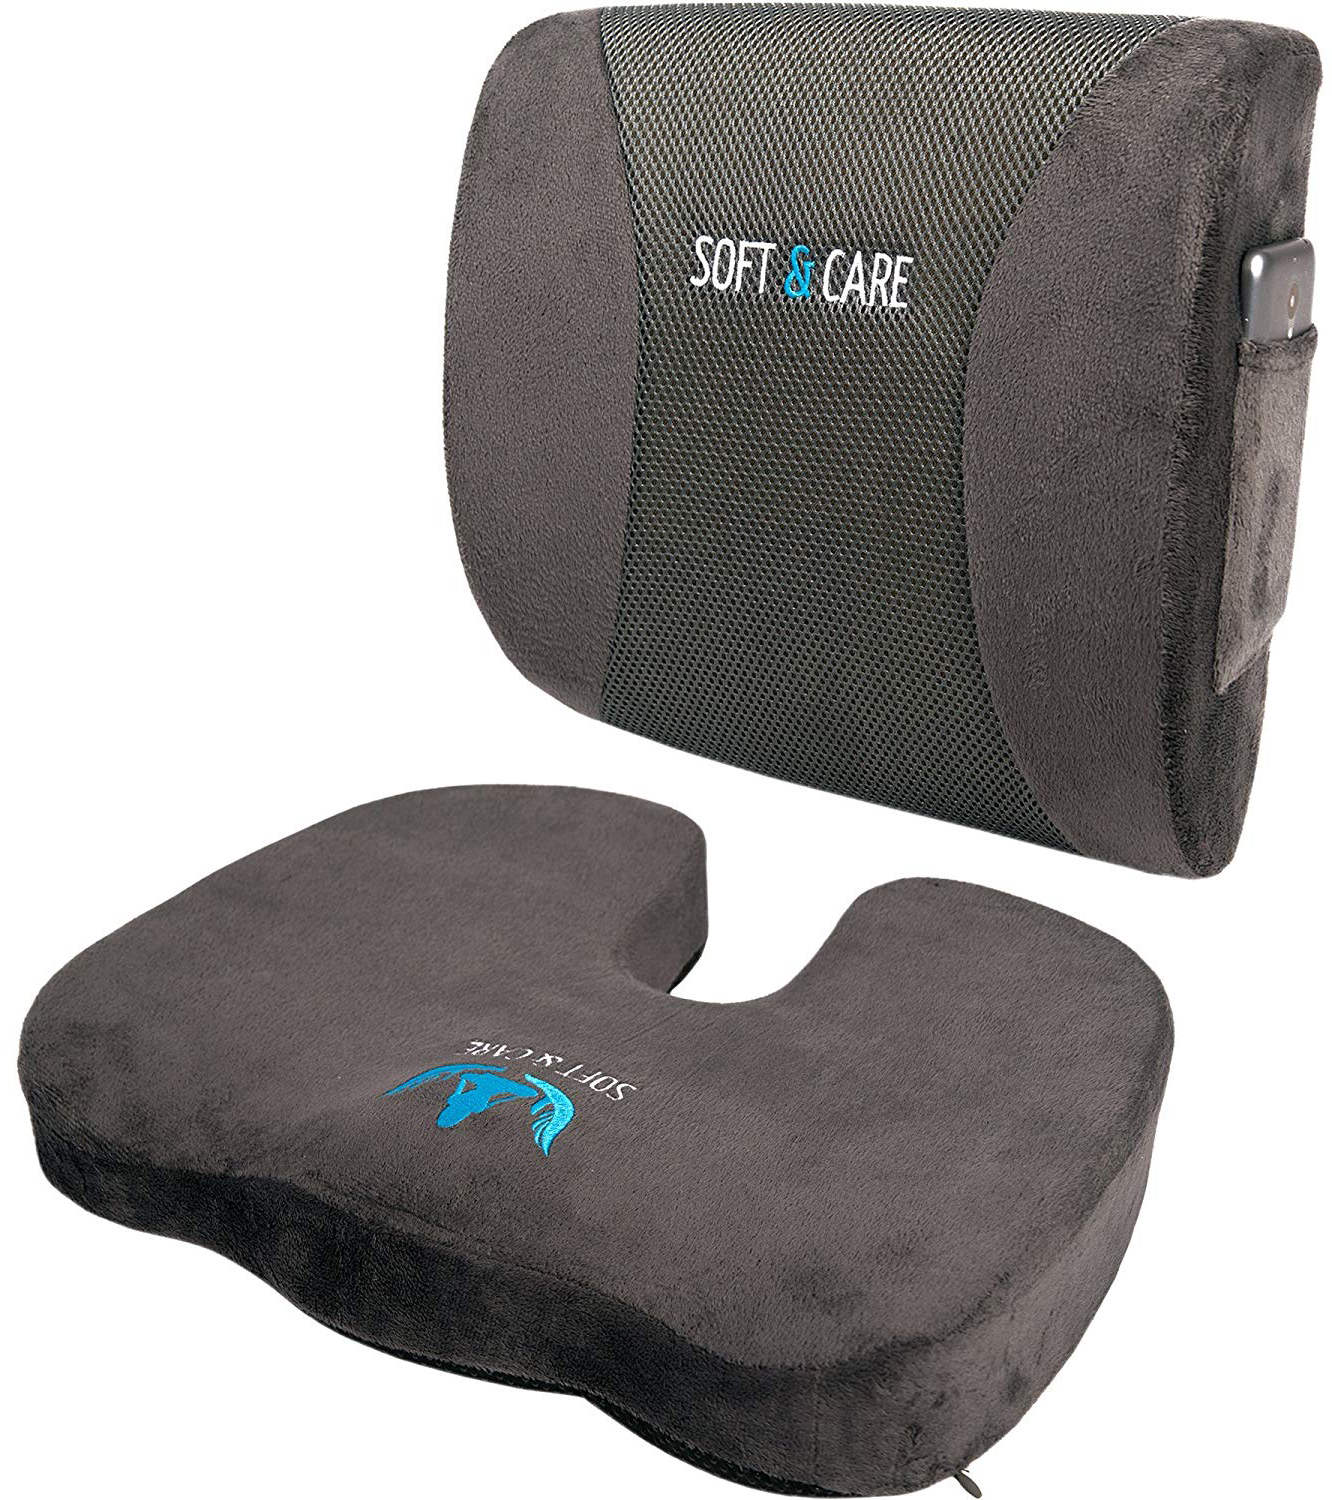 SOFTaCARE Coccyx Orthopedic Seat Cushion with Memory Foam